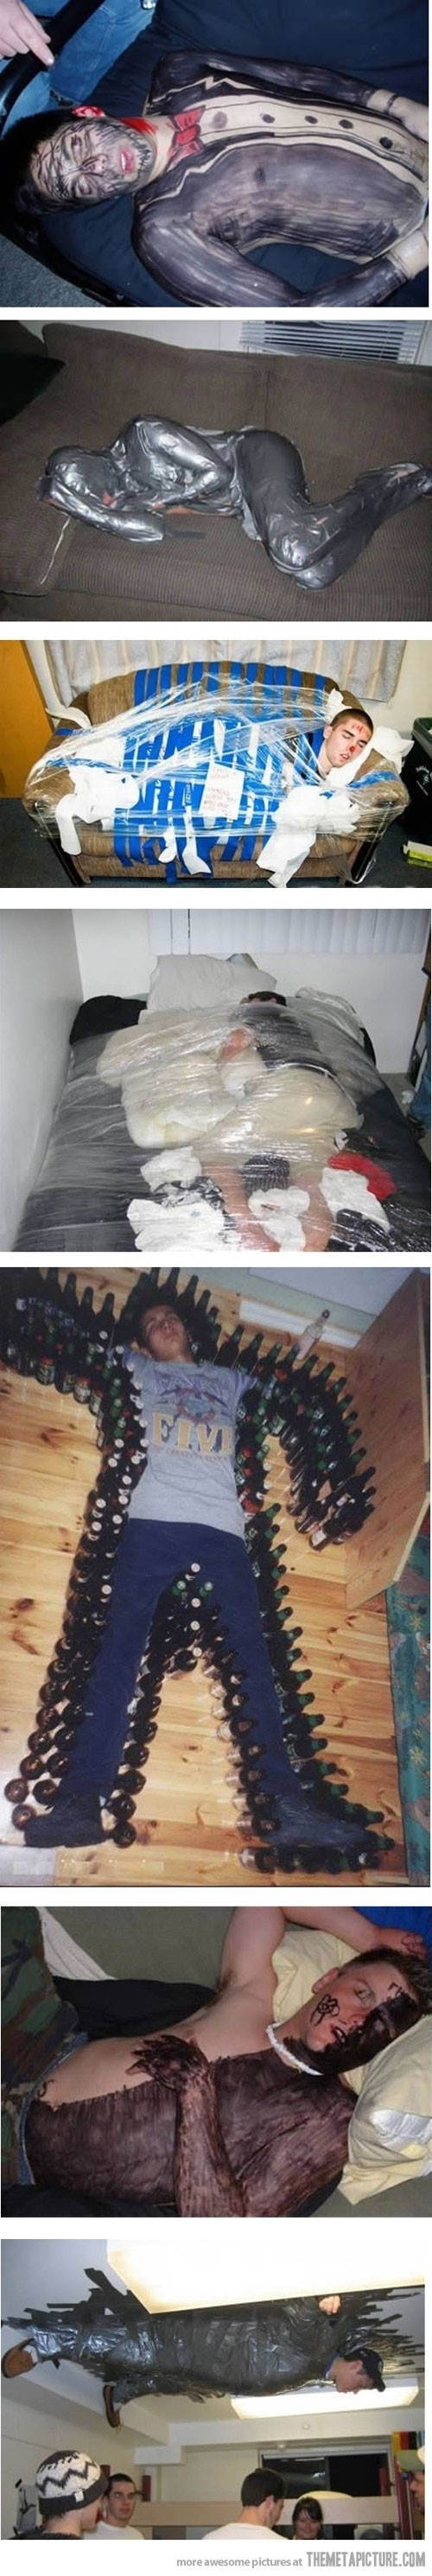 Reasons not to drink